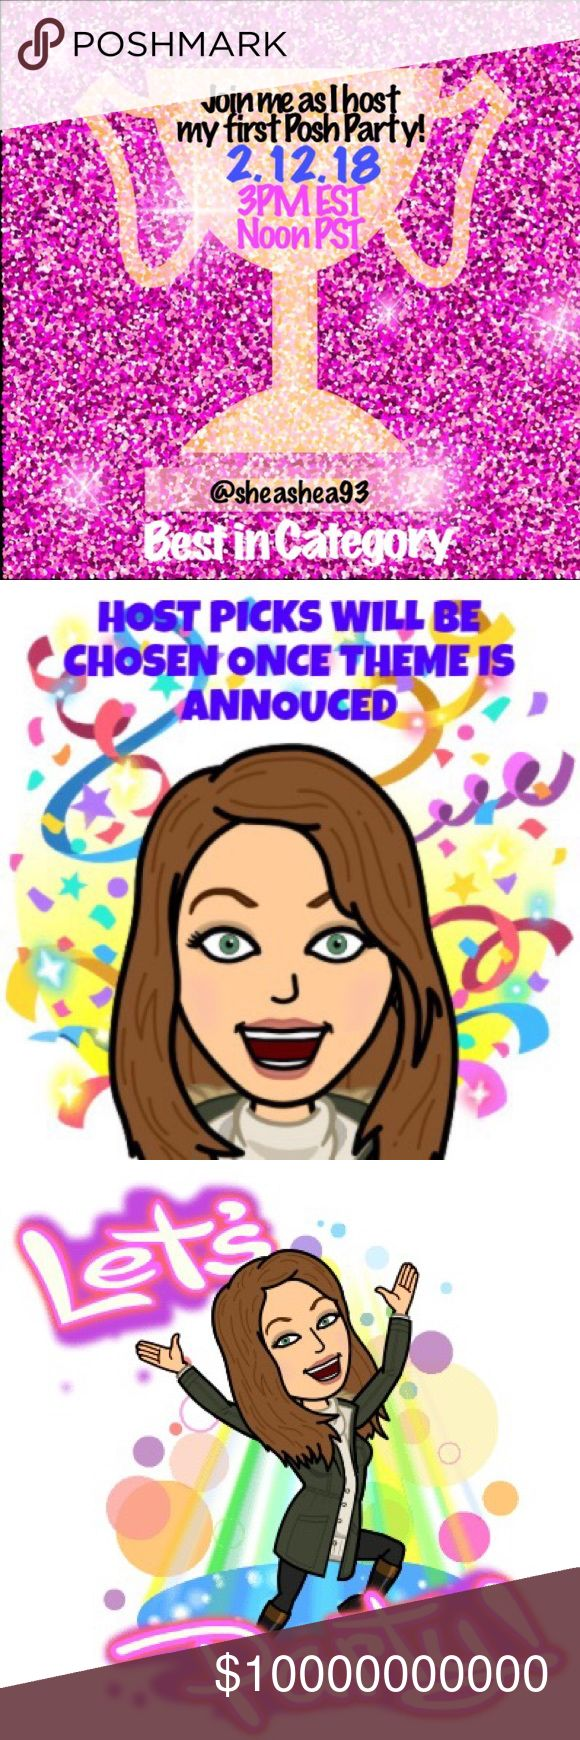 🎉 My First Posh Party 🎉 Save the Date!!!  My 1st Posh Party and you are all invited to celebrate with me ☺️❤️💋  Day: 2/12/2018  Time: 3pm Eastern  Theme: TBA   I will begin looking for potential host picks in a few weeks but until the Party Category is announced, I will not be able to make any definite selections.    To be considered for a HP you must have a COMPLIANT closet. Other